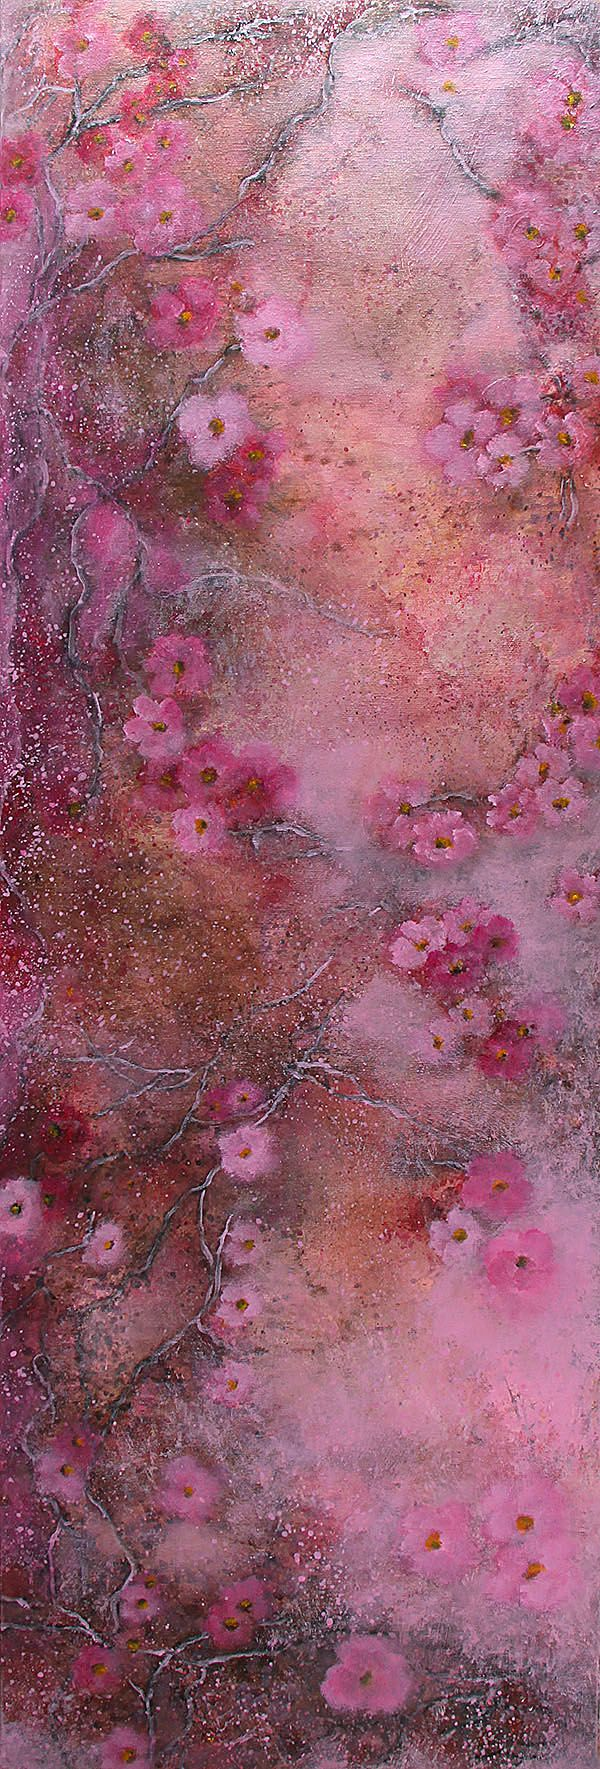 In a rose of delight...40x120cm acrylic canvas